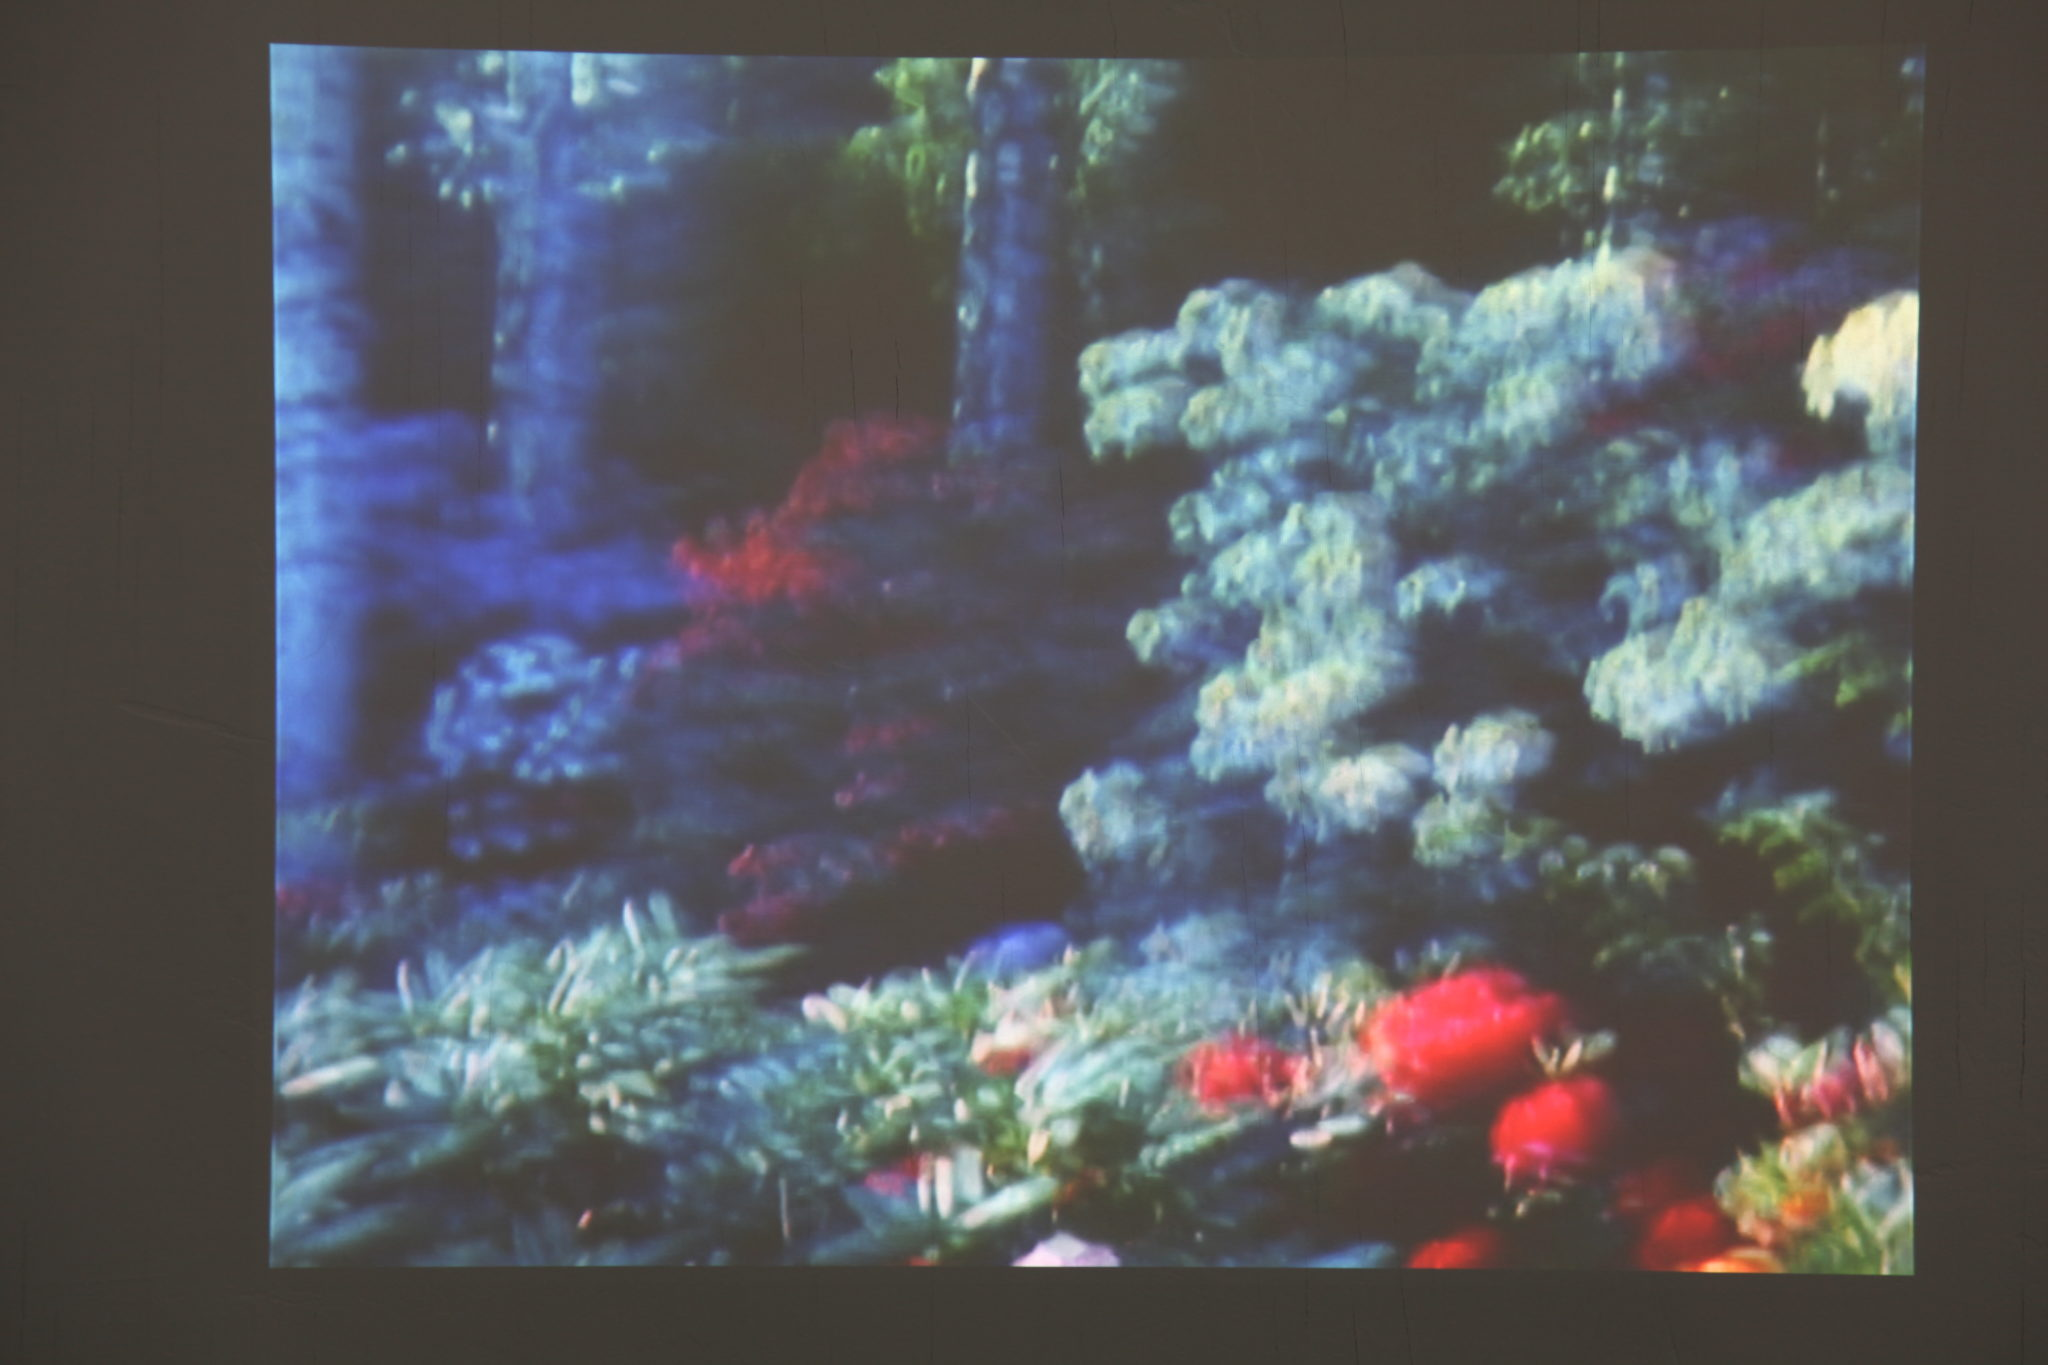 The Other Side, Super 8 film, digitalized